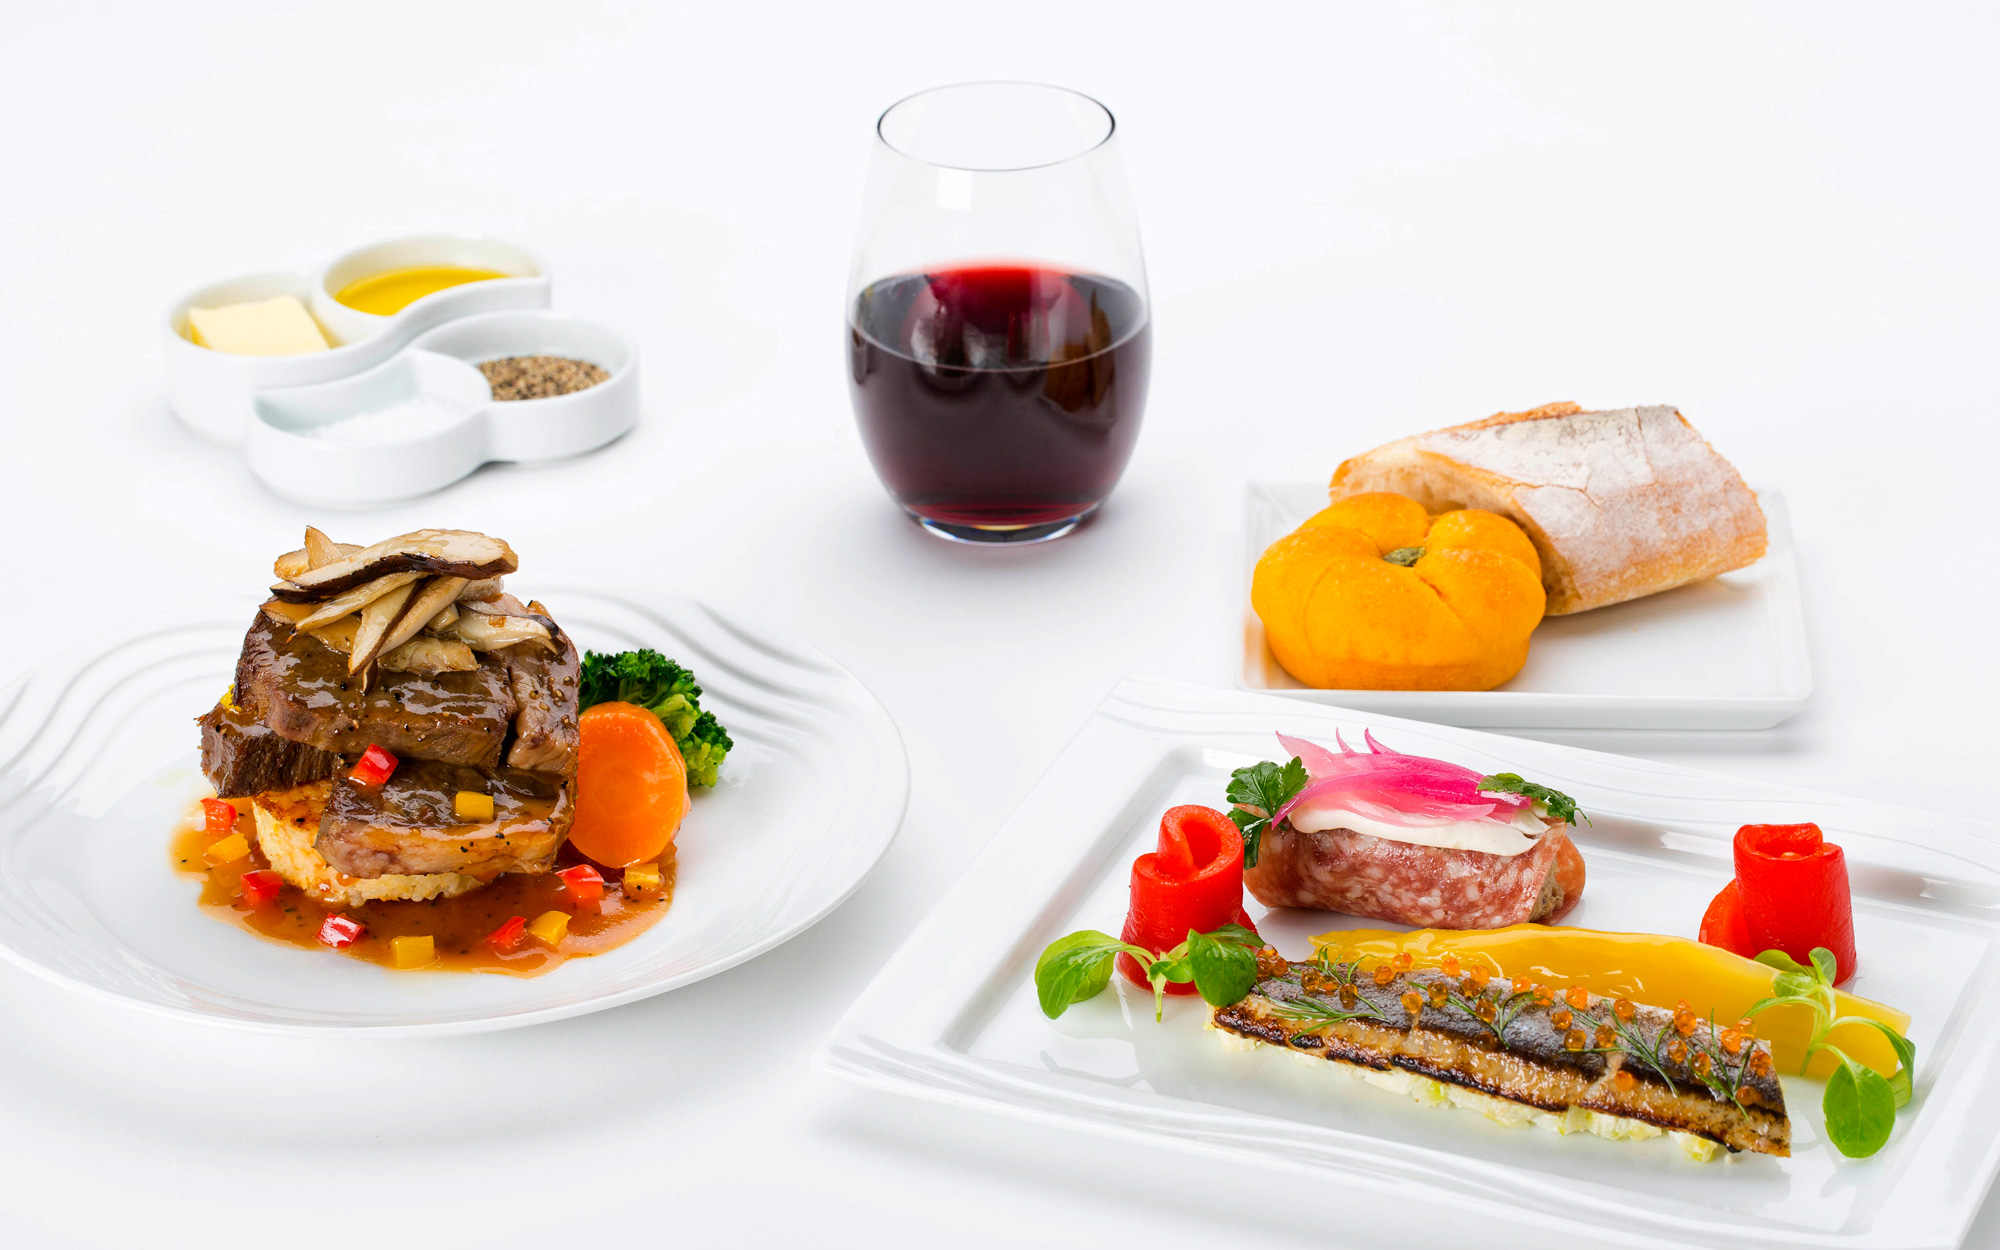 World's Best Airlines for Food: International: All Nippon Airways